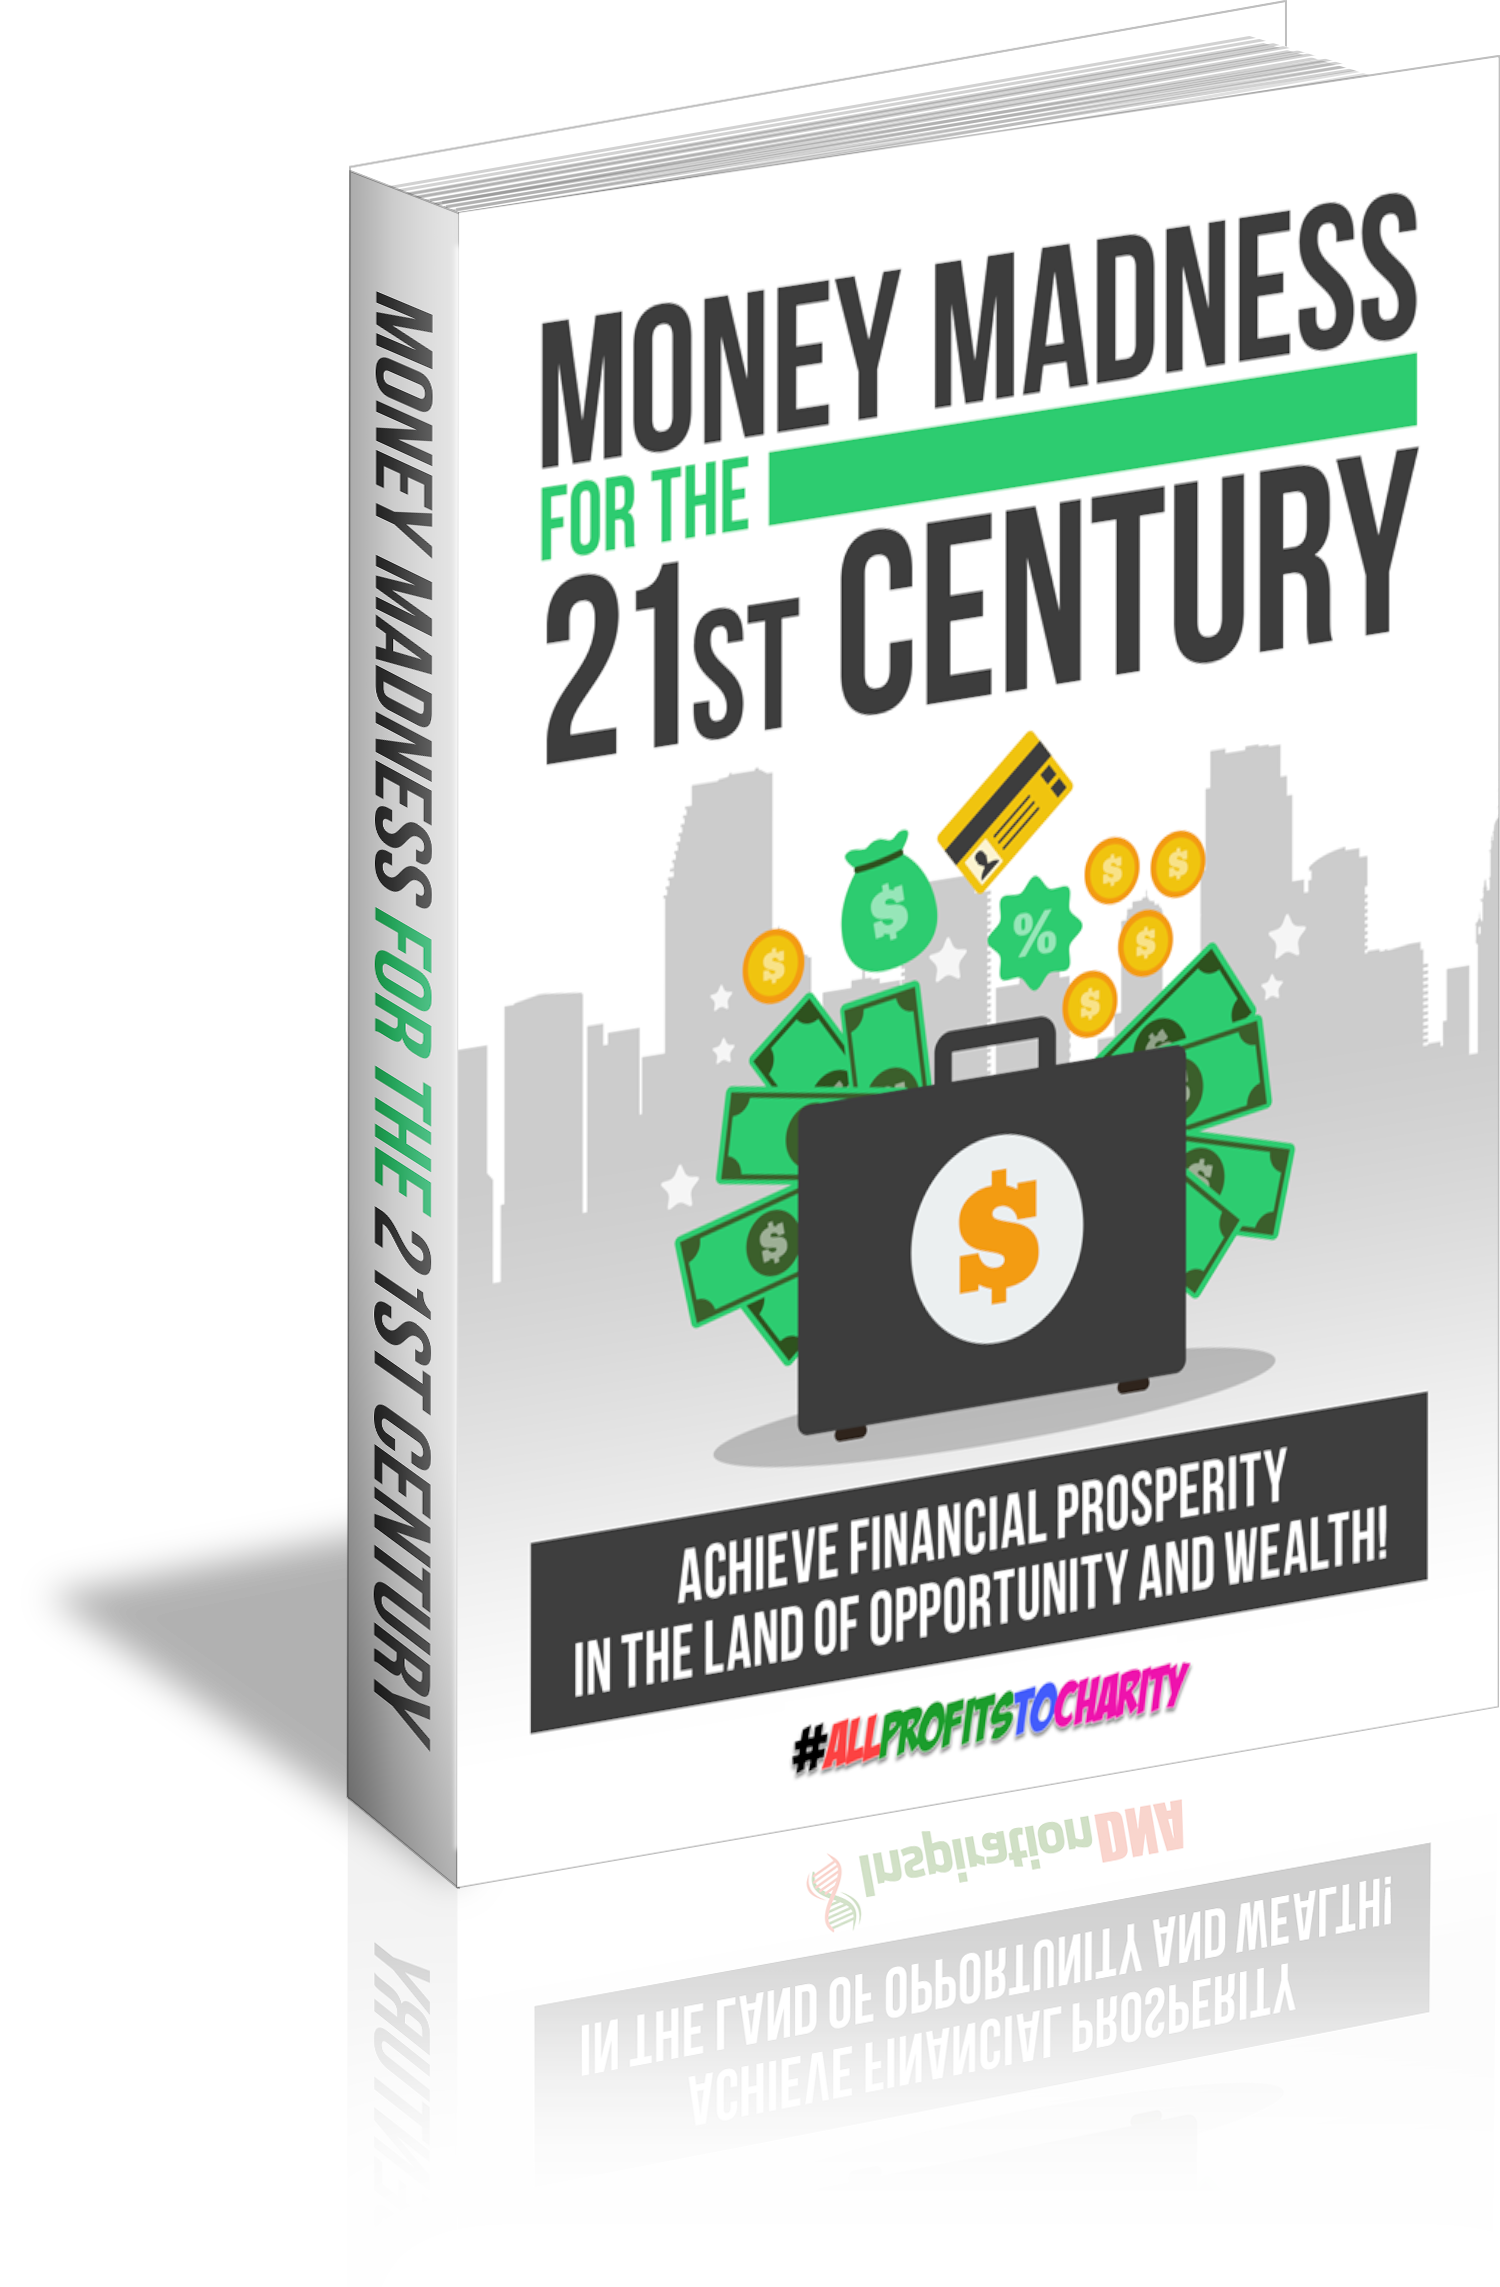 Money Madness For The 21st Century cover